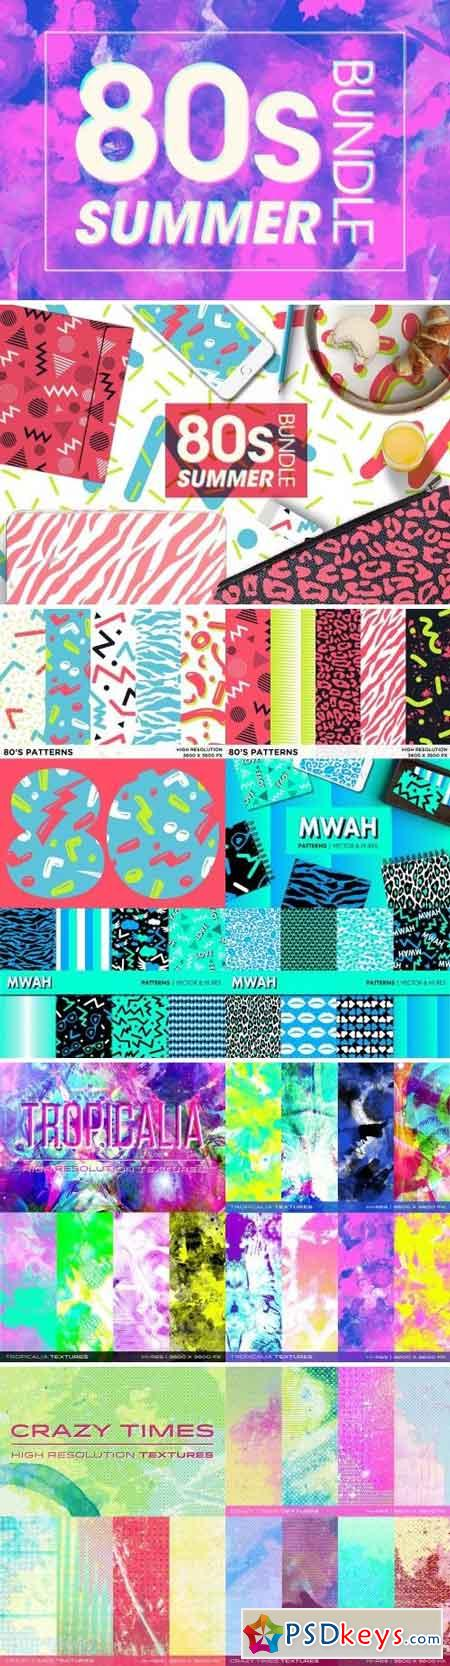 80s » page 3 » Free Download Photoshop Vector Stock image